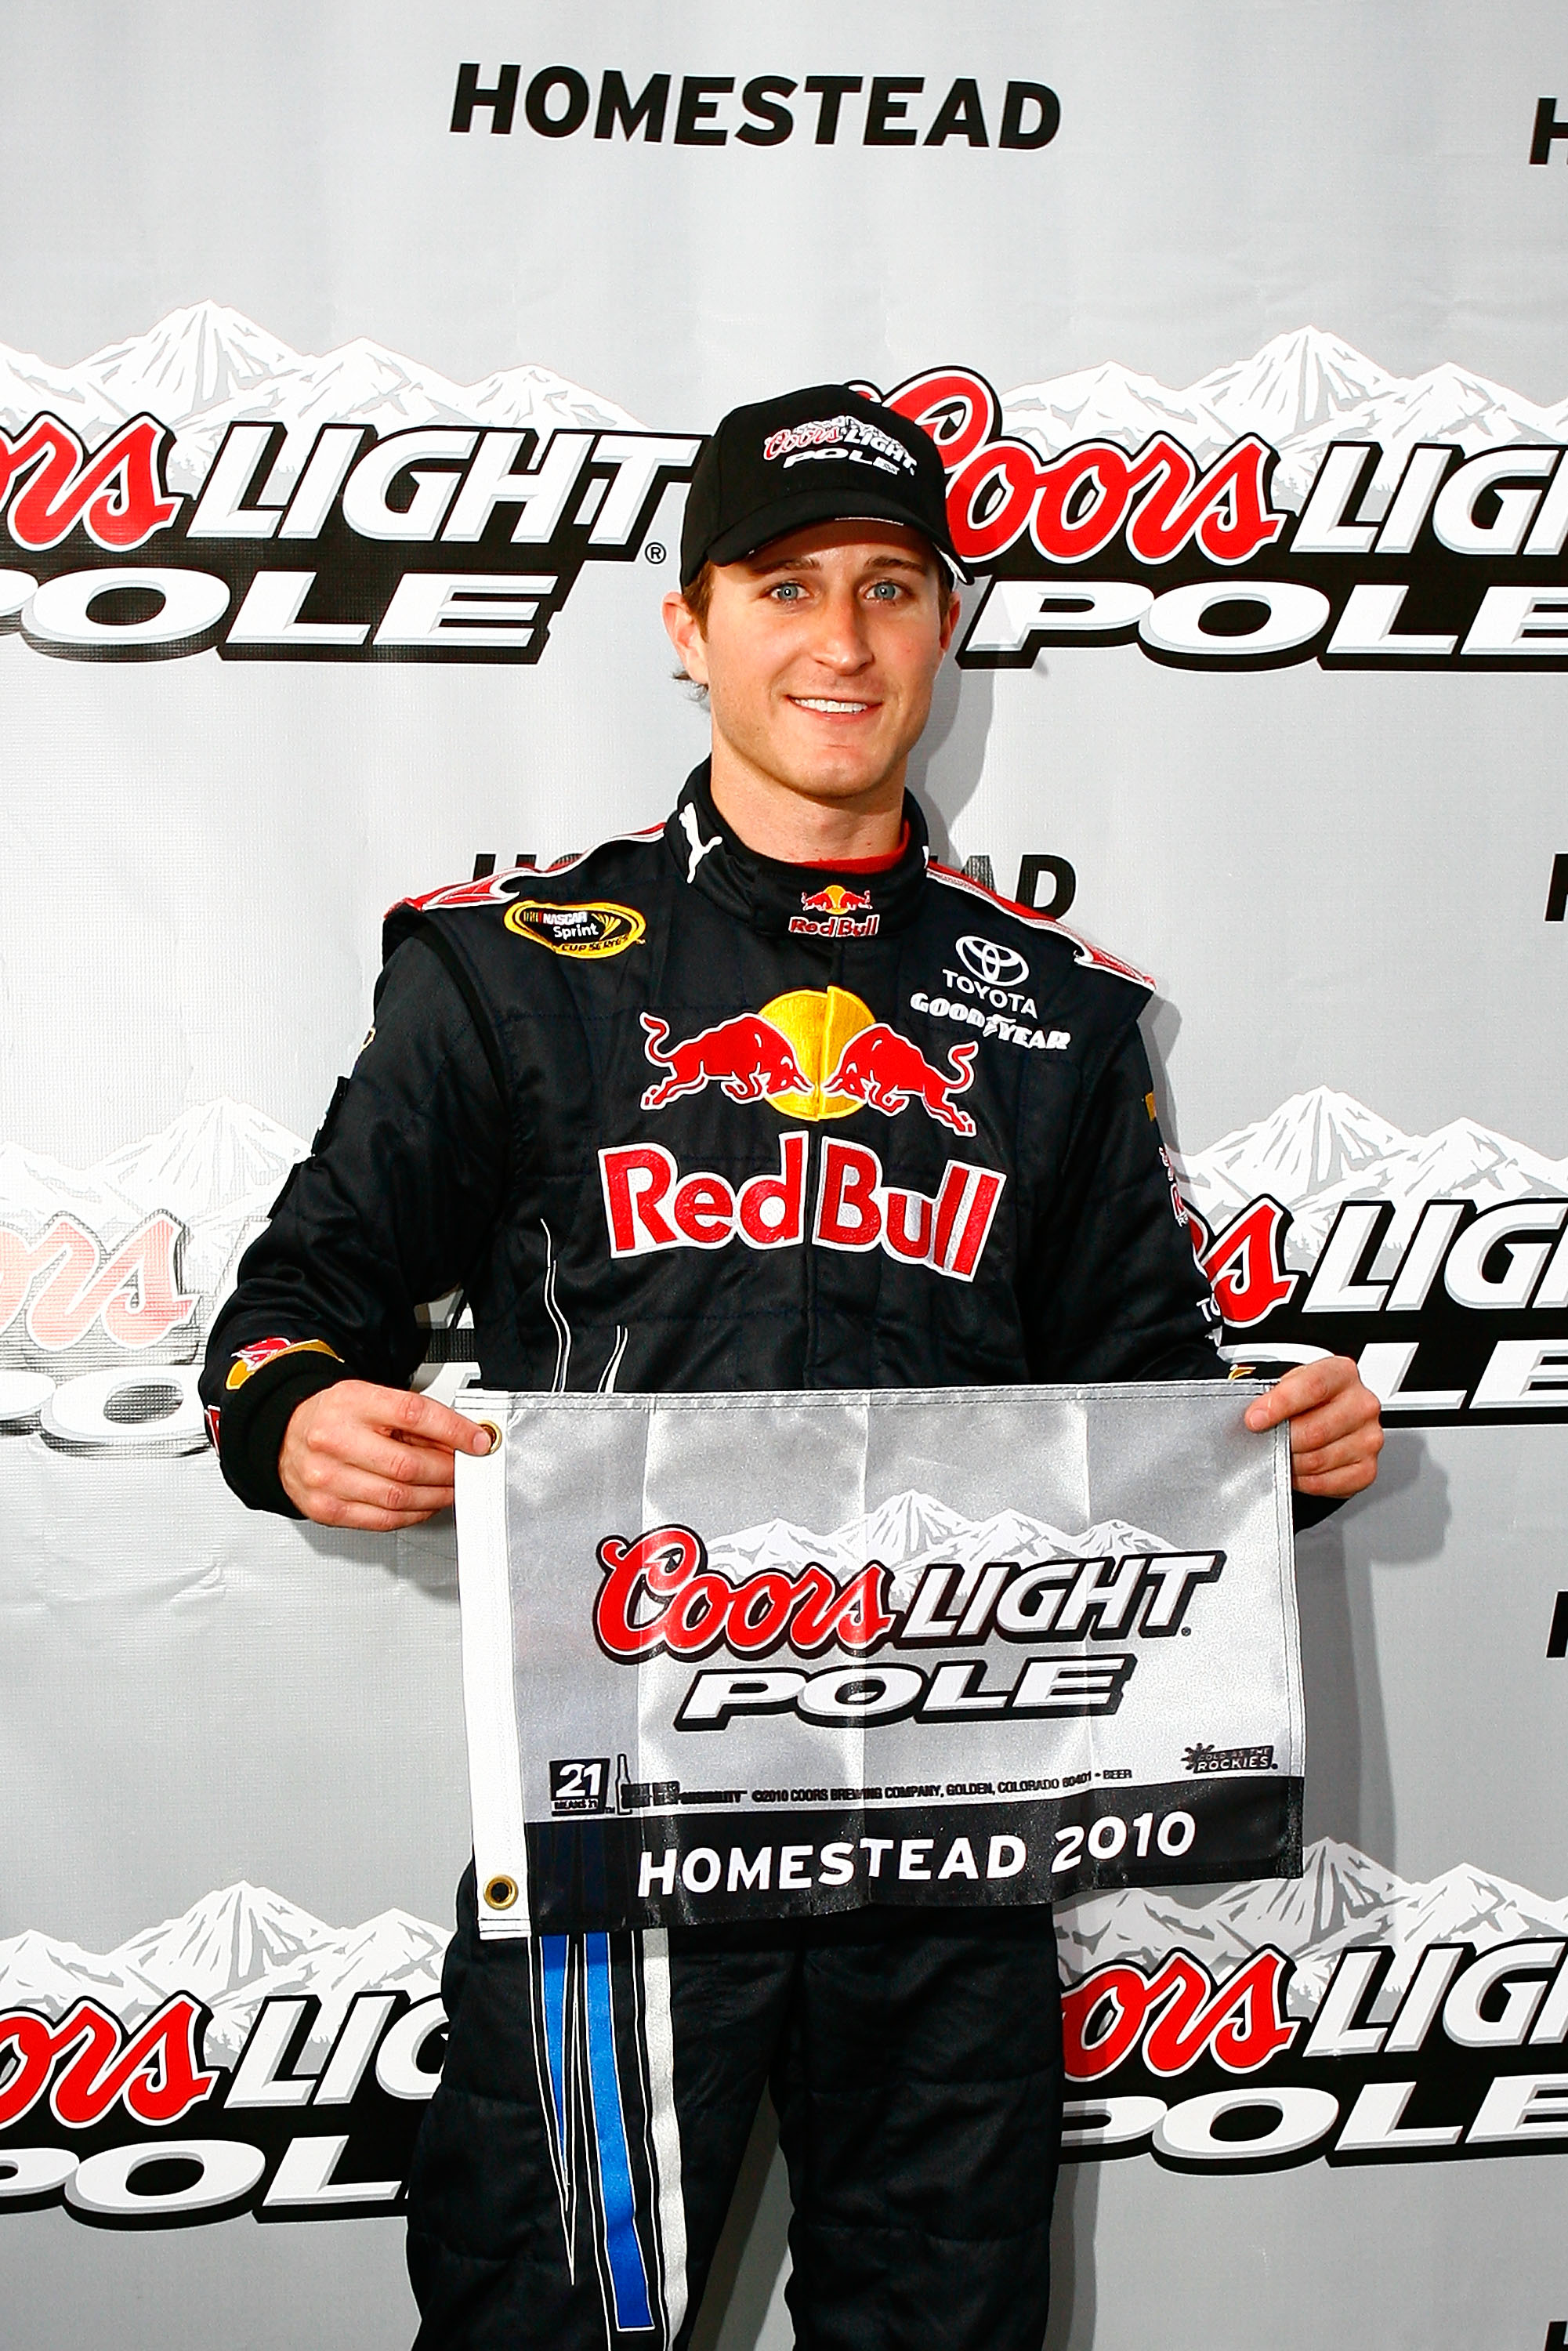 HOMESTEAD, FL - NOVEMBER 19:  Kasey Kahne, driver of the #83 Red Bull Toyota, poses after qualifying for the pole position in the the NASCAR Sprint Cup Series Ford 400 at Homestead-Miami Speedway on November 19, 2010 in Homestead, Florida.  (Photo by Jaso